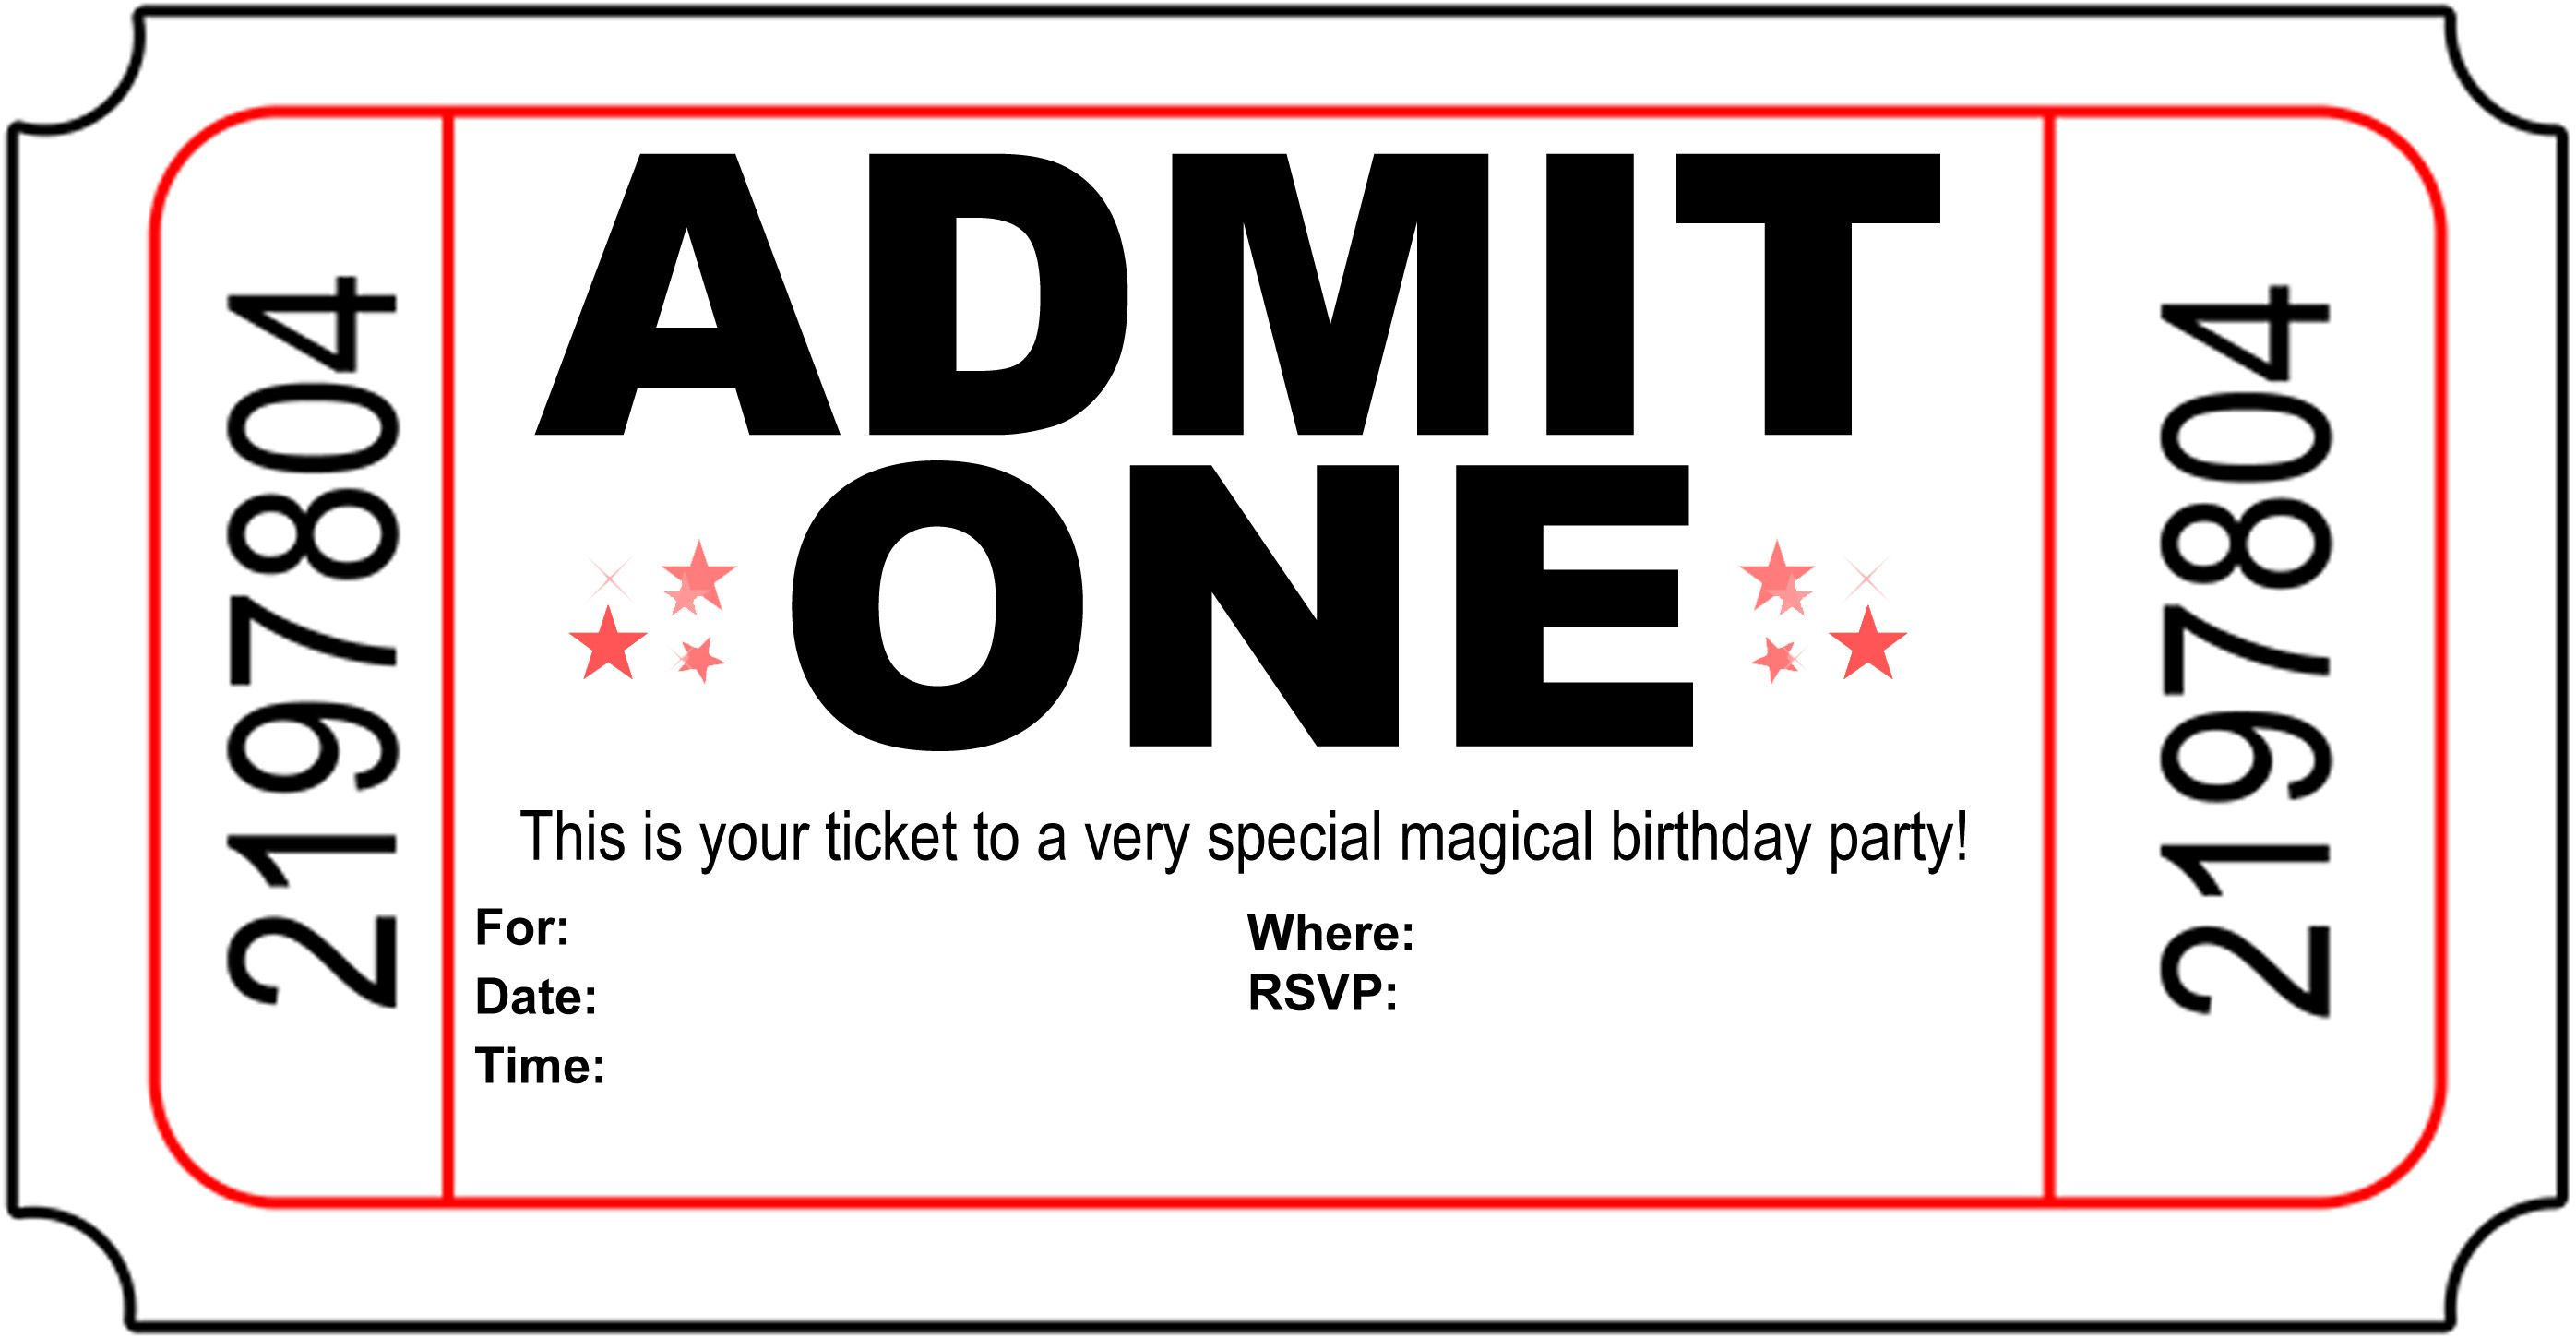 Invitation Card For Childrens Party To Owner Invitation - Party invitation template: train party invitations templates